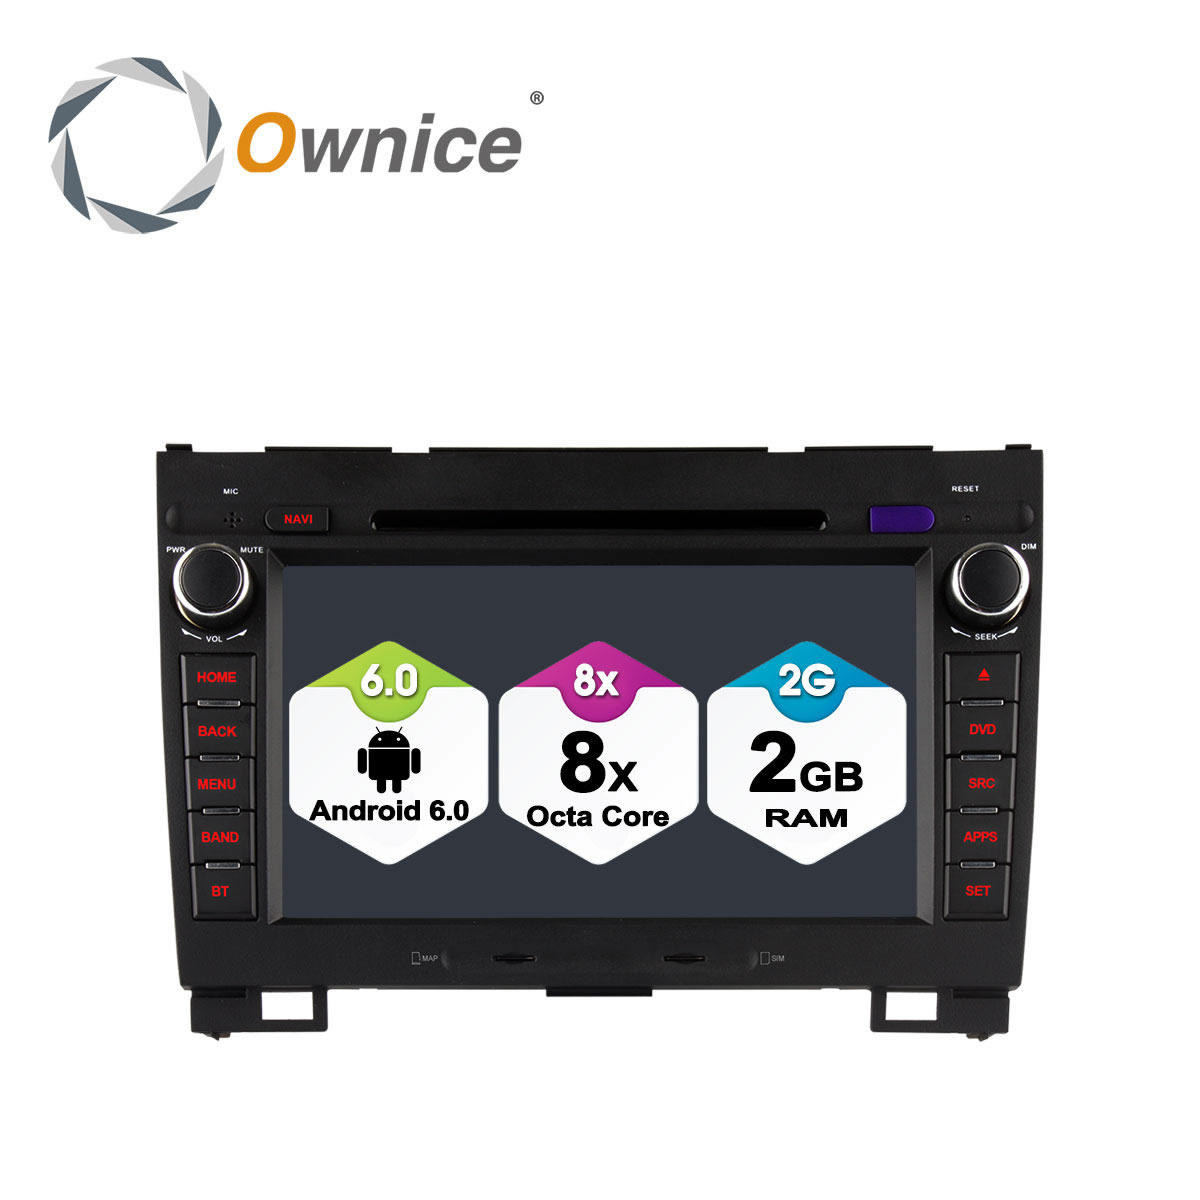 Ownice C500 Android 6.0 Octa 8 Core 4g SIM LTE LECTEUR DVD de VOITURE Pour Great Wall Hover H3 H5 avec GPS navigation radio 32g ROM